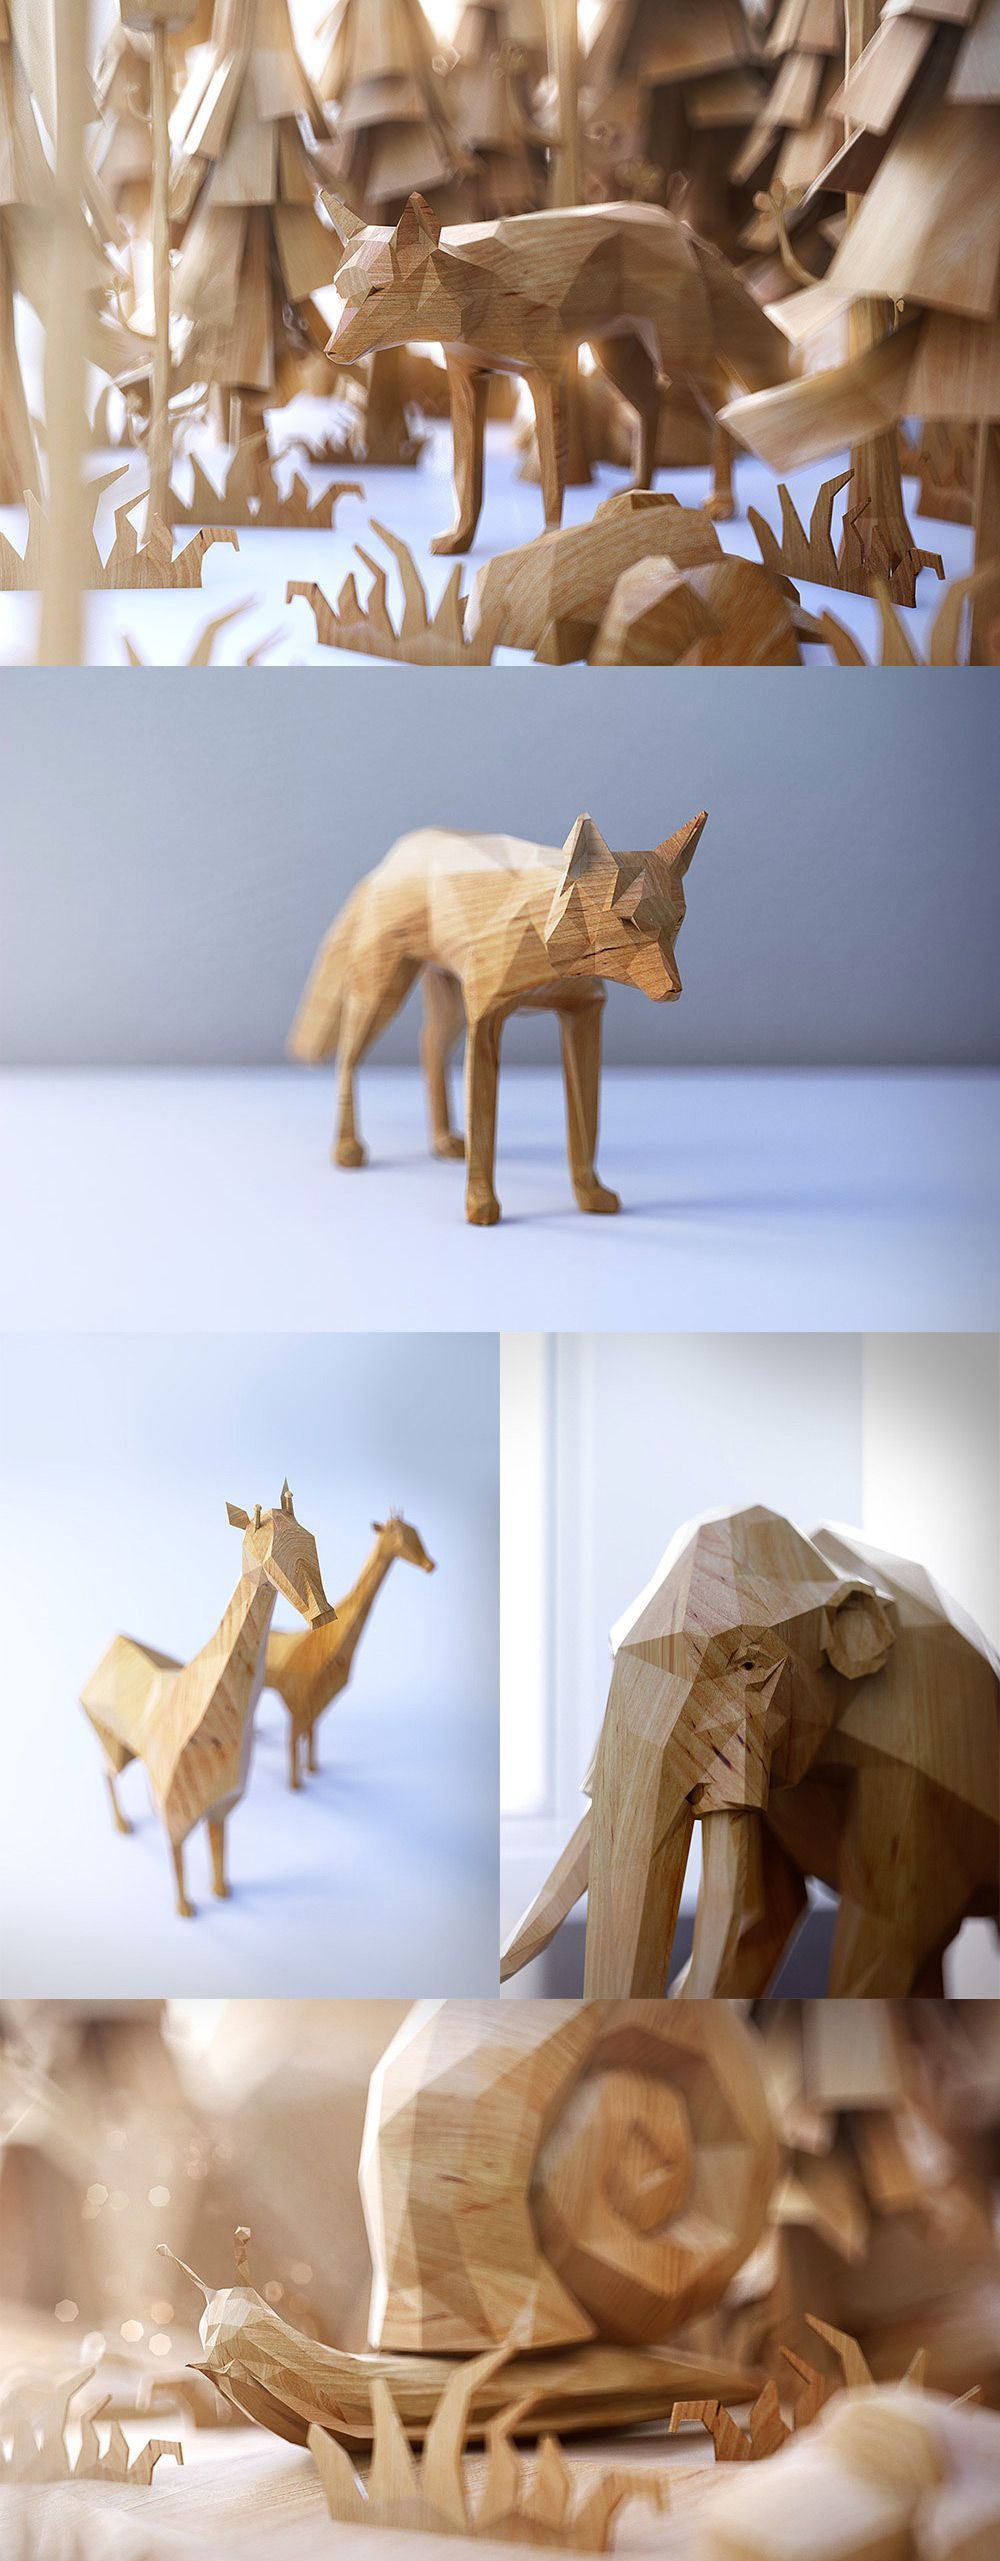 Polywood Toy Animal Concepts Rendered In Polygons By Mat